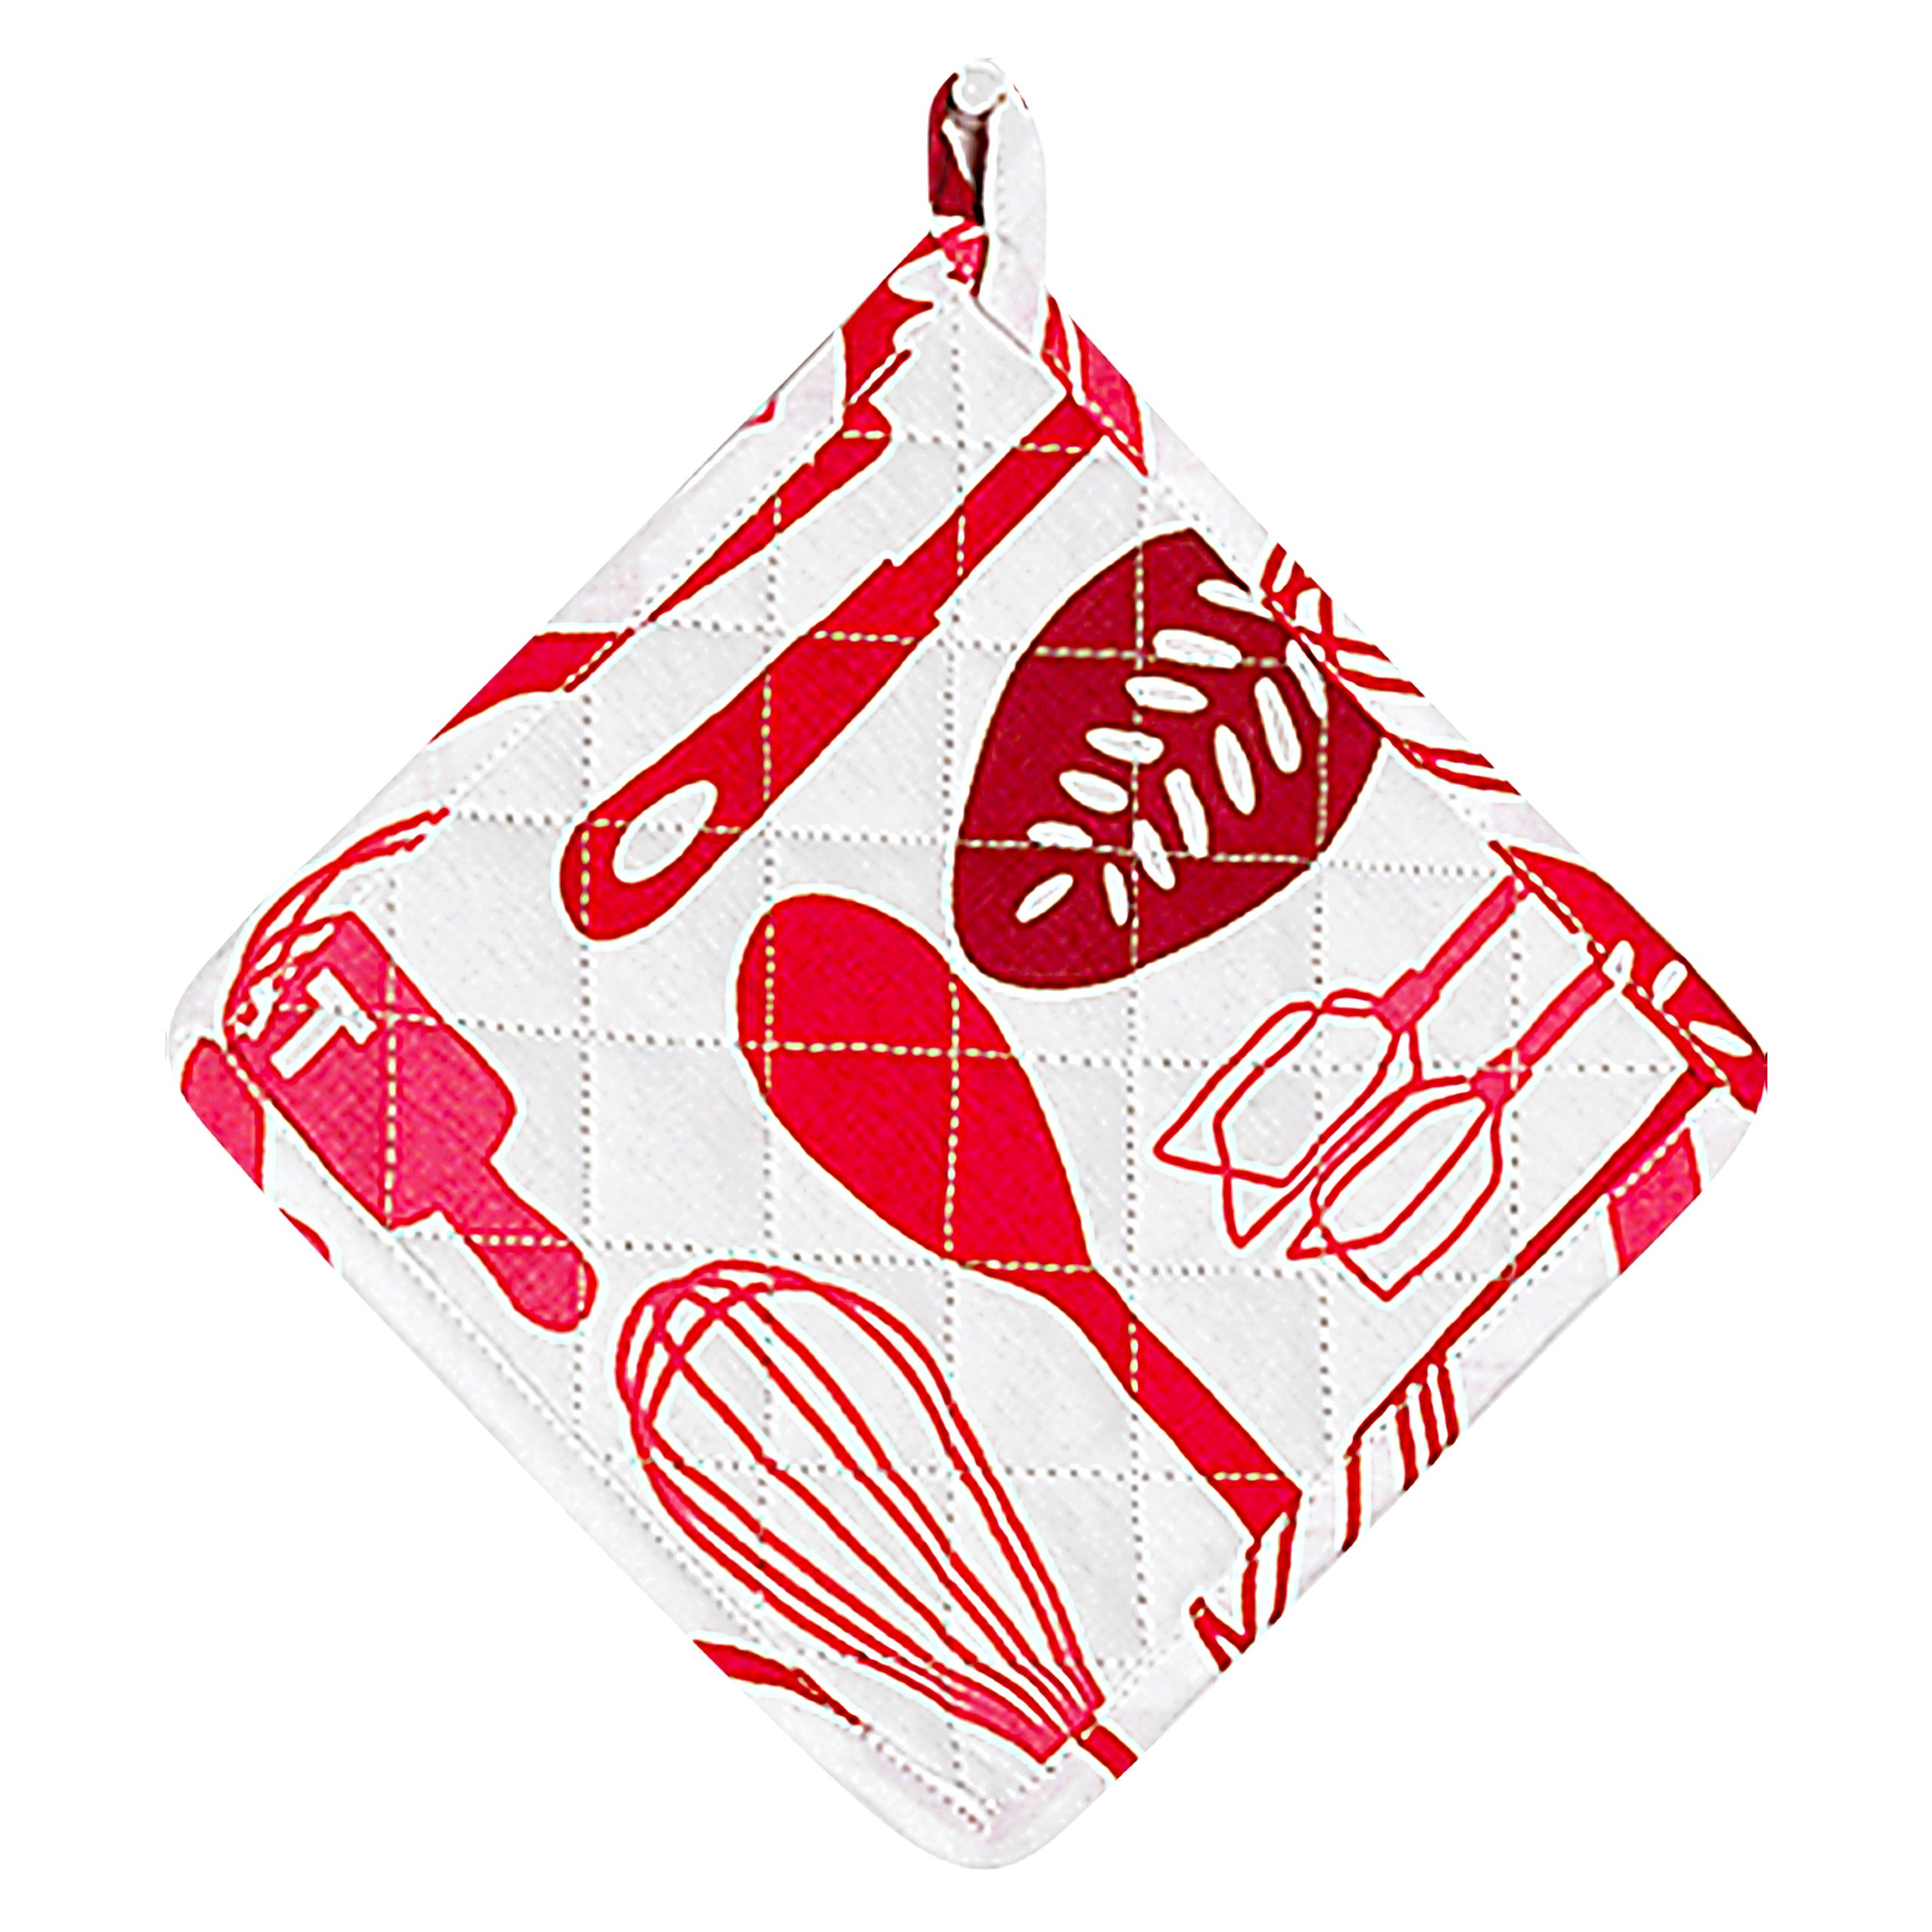 Meat Red Pot Holder - Oven Glove - 100% Cotton Quilted, Machine Washable - 8'' x 8'' - Color Coded Kitchen Tools by The Kosher Cook by The Kosher Cook